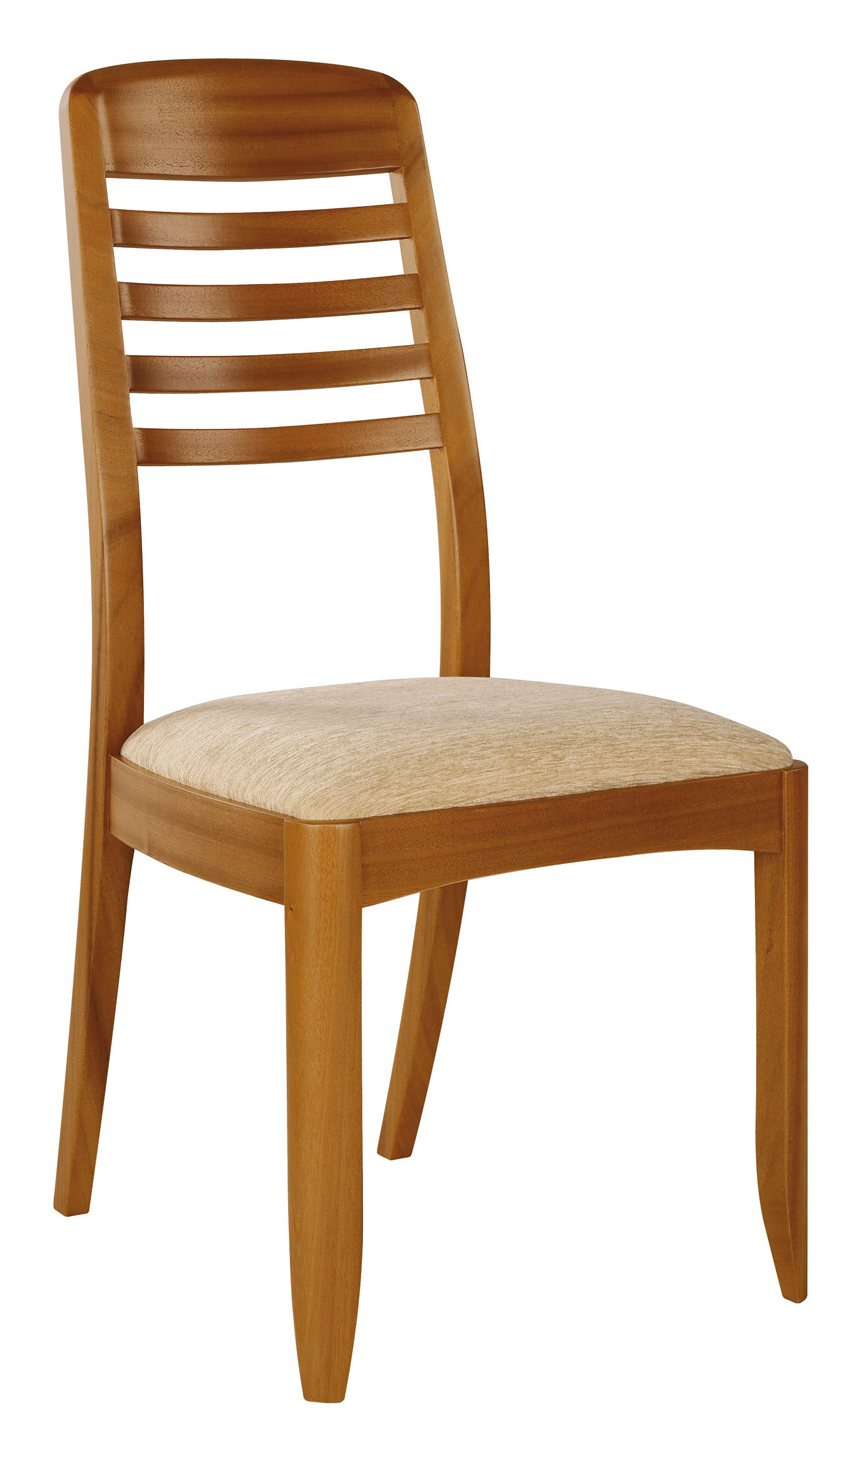 Nathan Furniture Nathan 3814 Teak Ladder Back Dining Chair